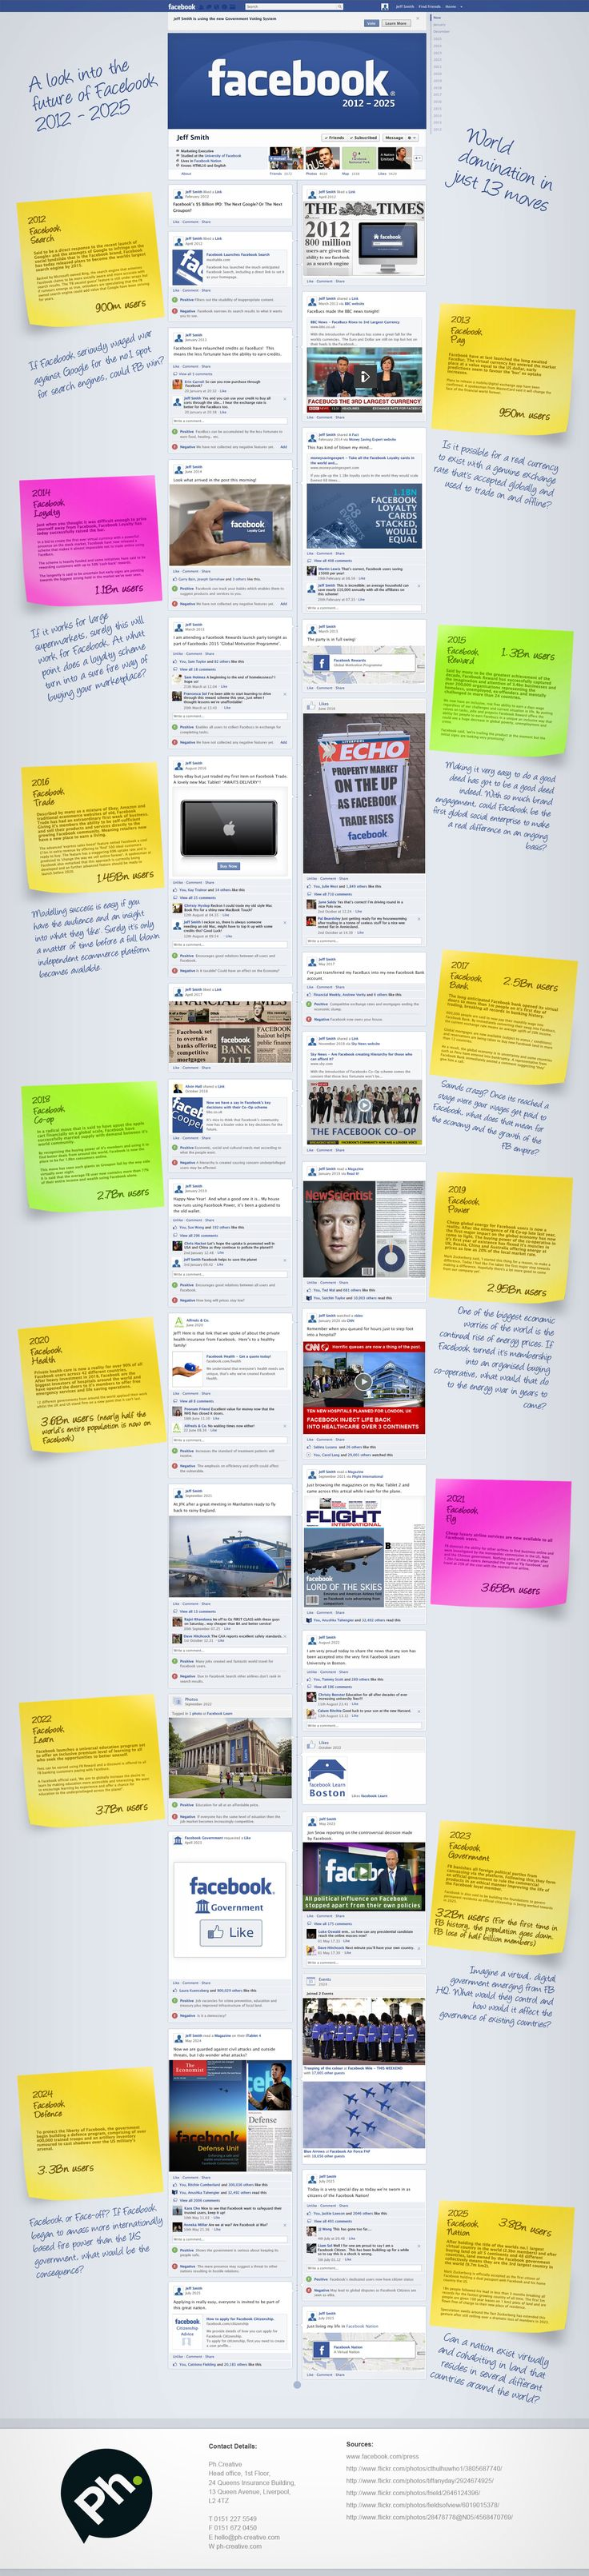 What Facebook Will Look Like Between 2012-2025 - Infographic